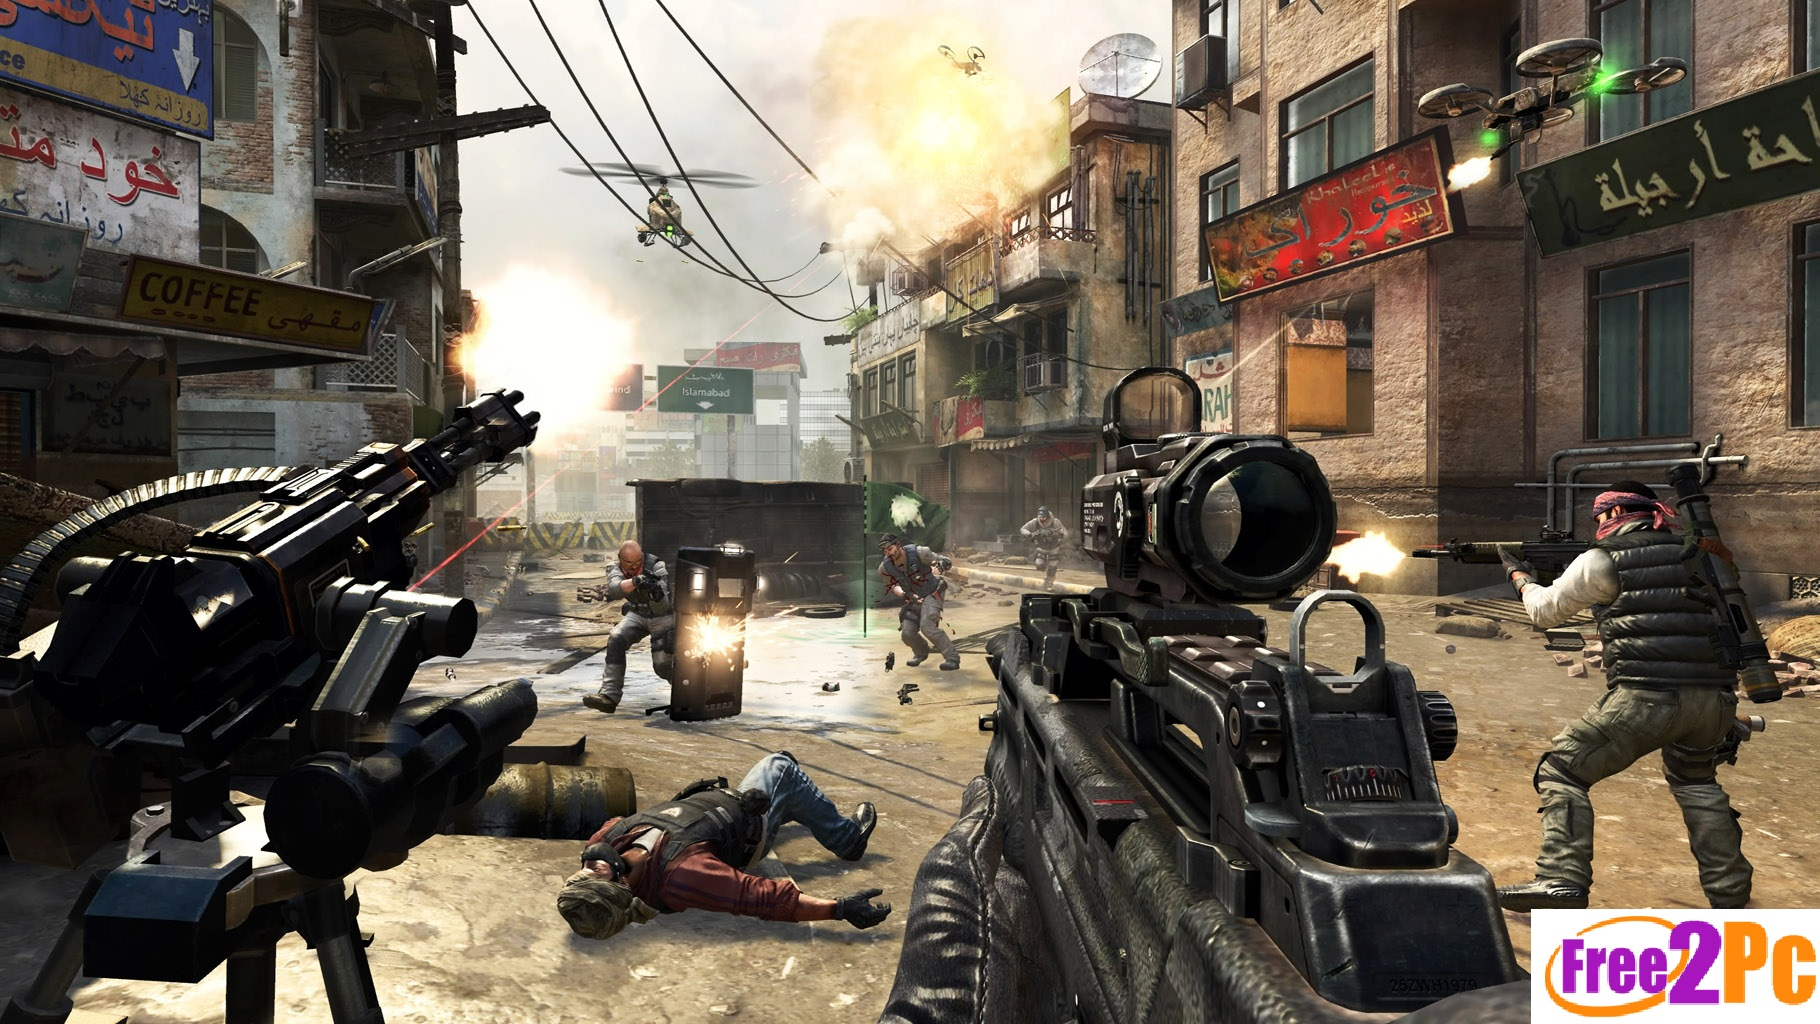 Call-of-Duty-game-pc-www-free2pc-com